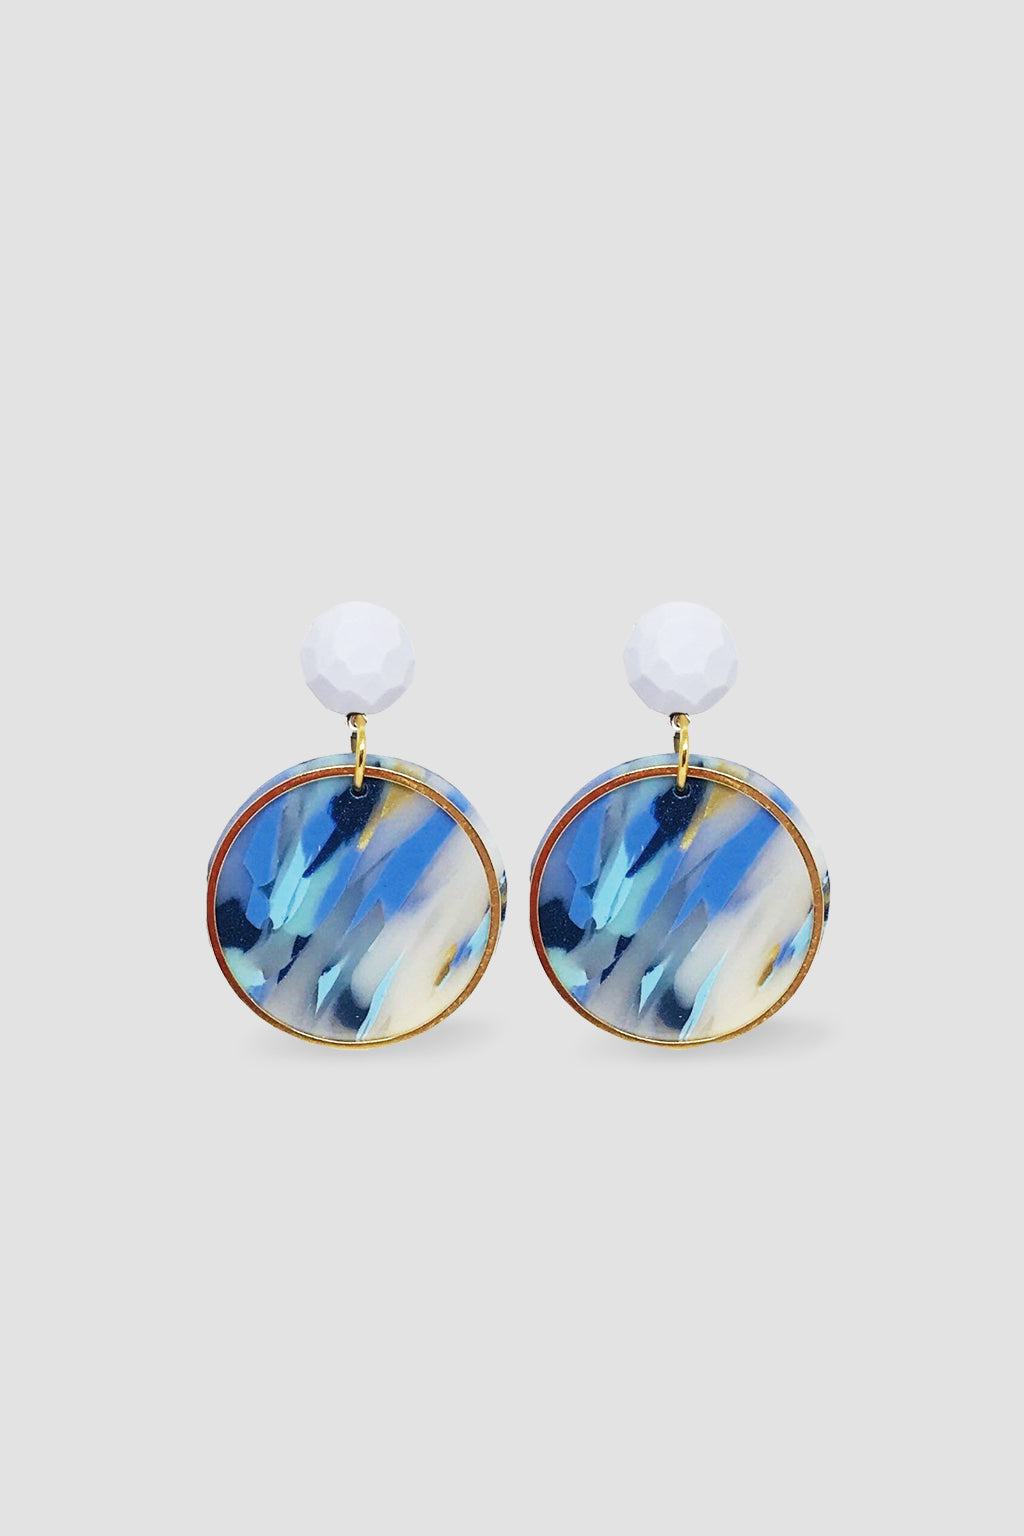 Down The Rabbit Hole-Geo Statement Dangle Earring - White Blue-Mott and Mulberry